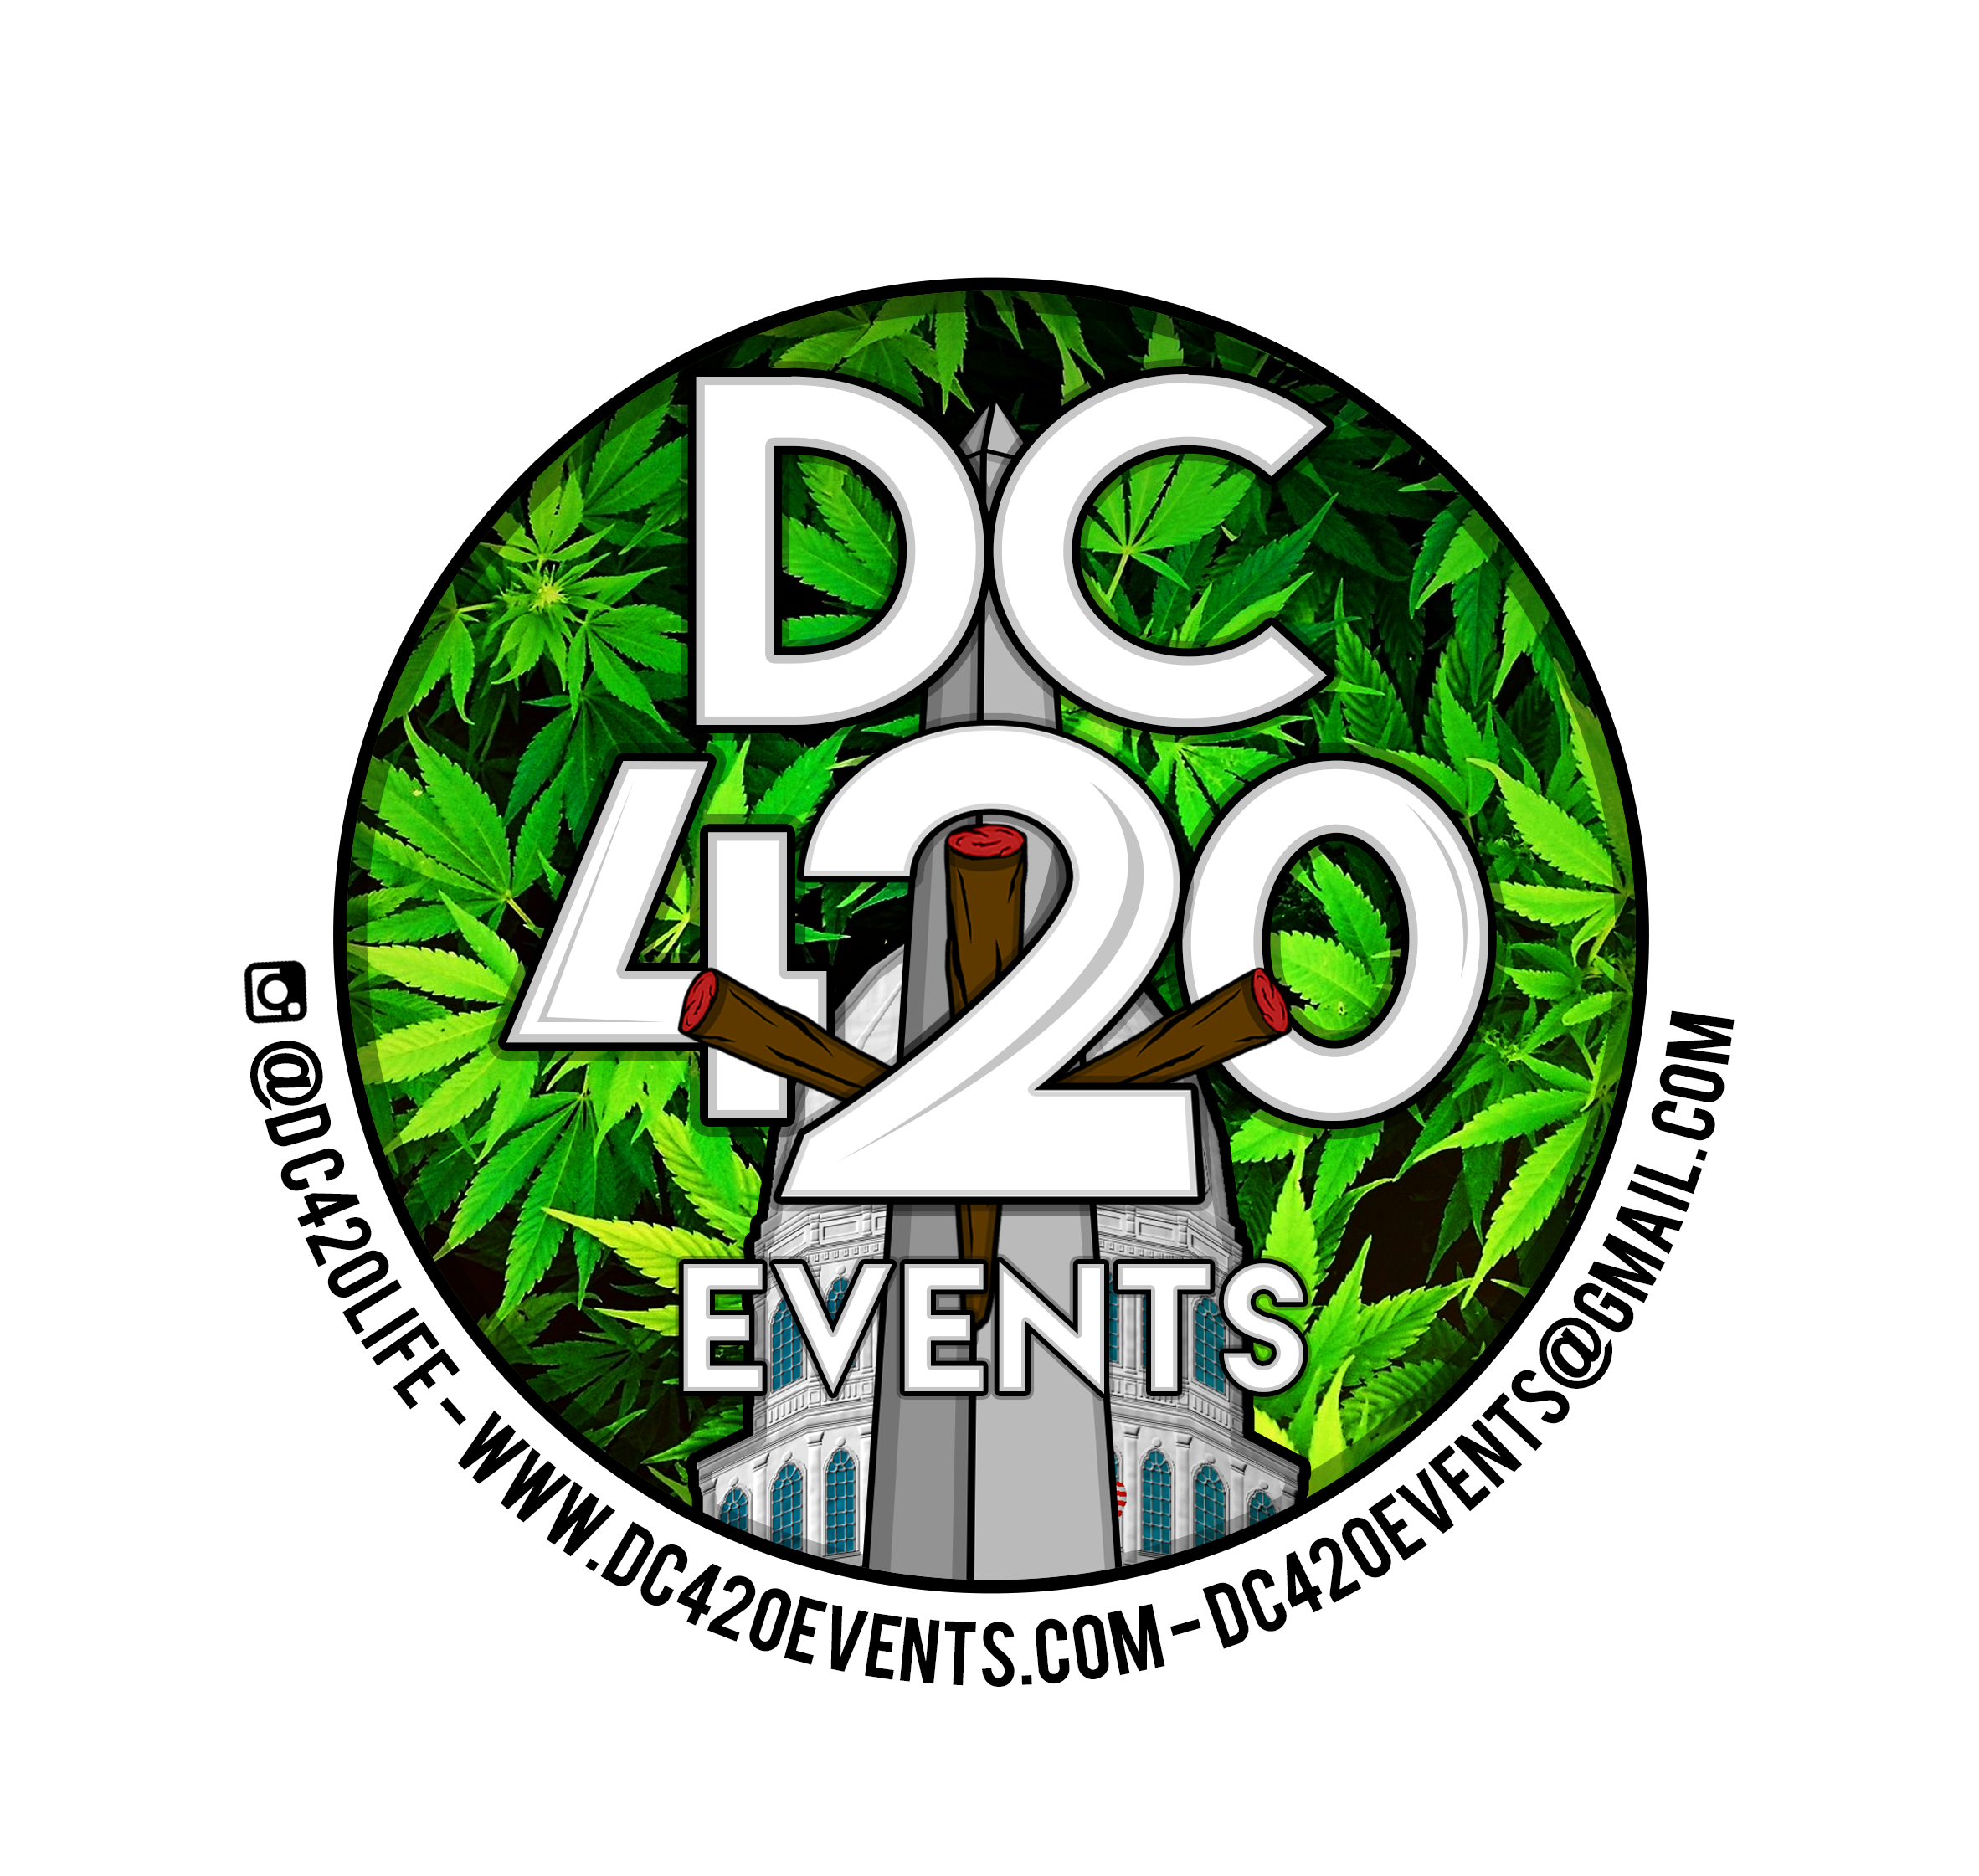 Delivery Services Archives - DC 420 Events